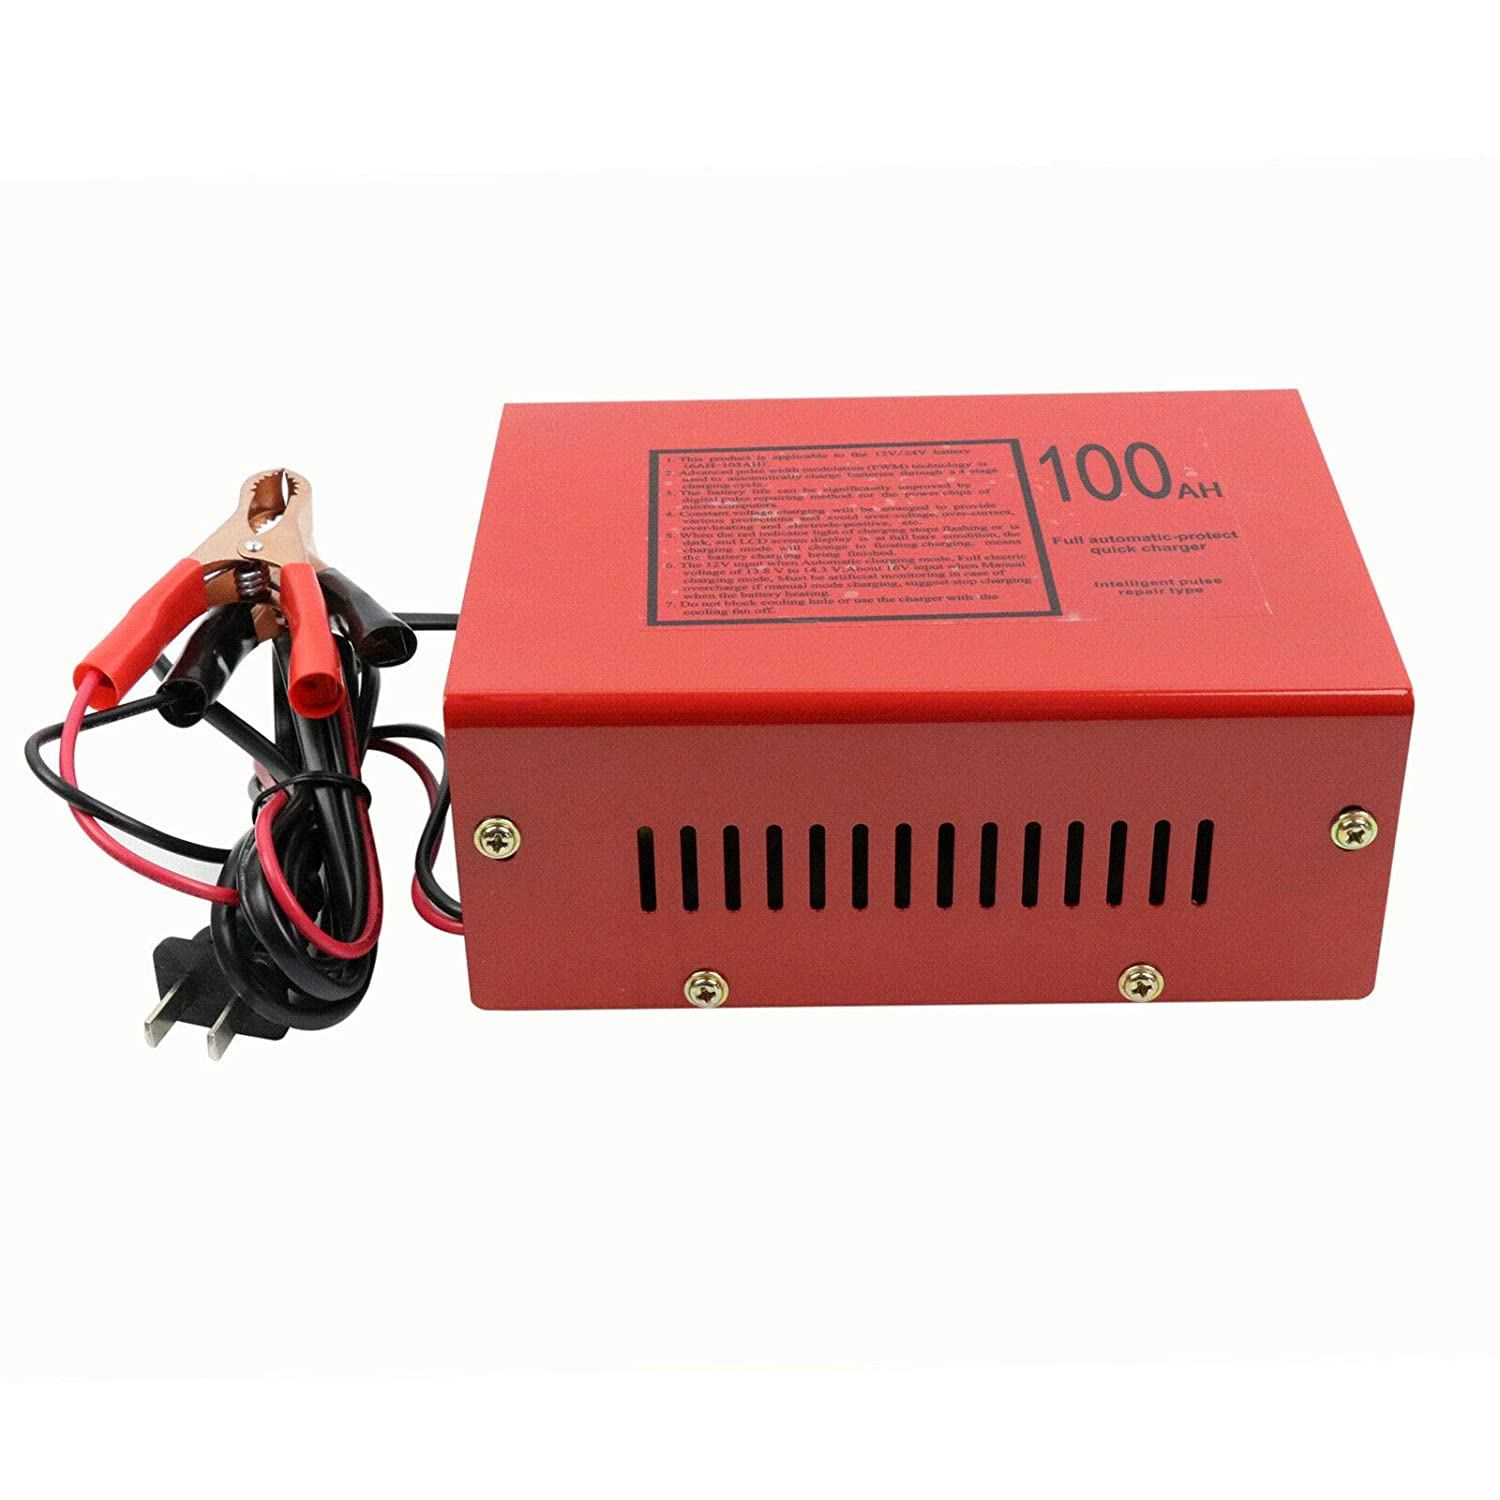 New 12V//24V 10A 140W for Car Motorcycle Lead Acid Battery Charger Full Automatically